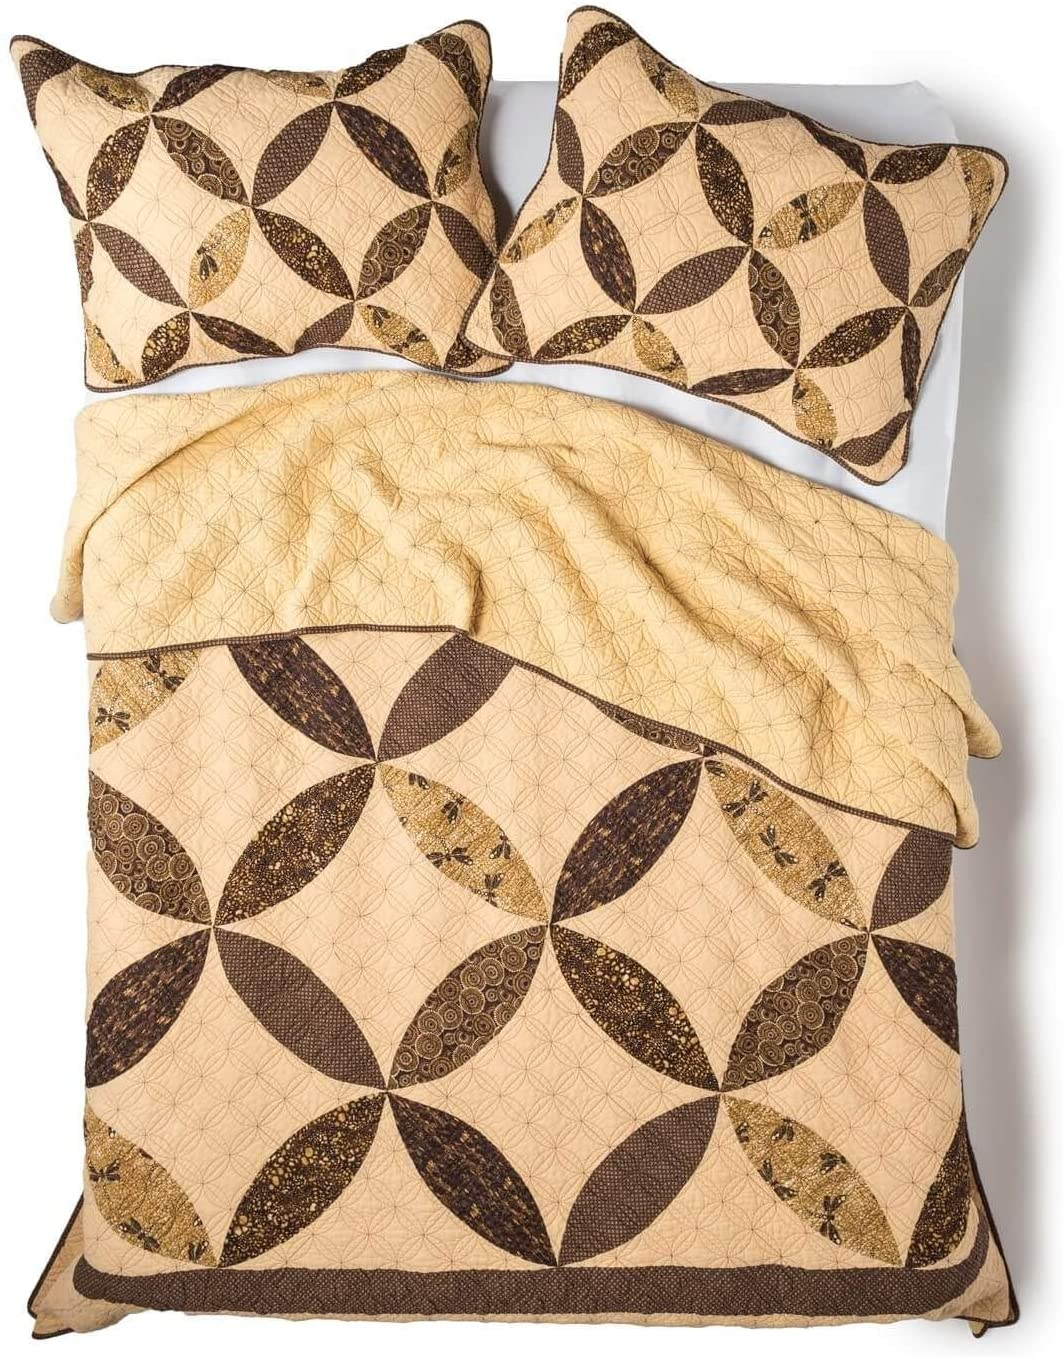 Donna Sharp Full/Queen Quilt - Dragonfly Cathedral Window Lodge Quilt with Classic Ring Design - Fits Queen Size and Full Size Beds - Machine Washable